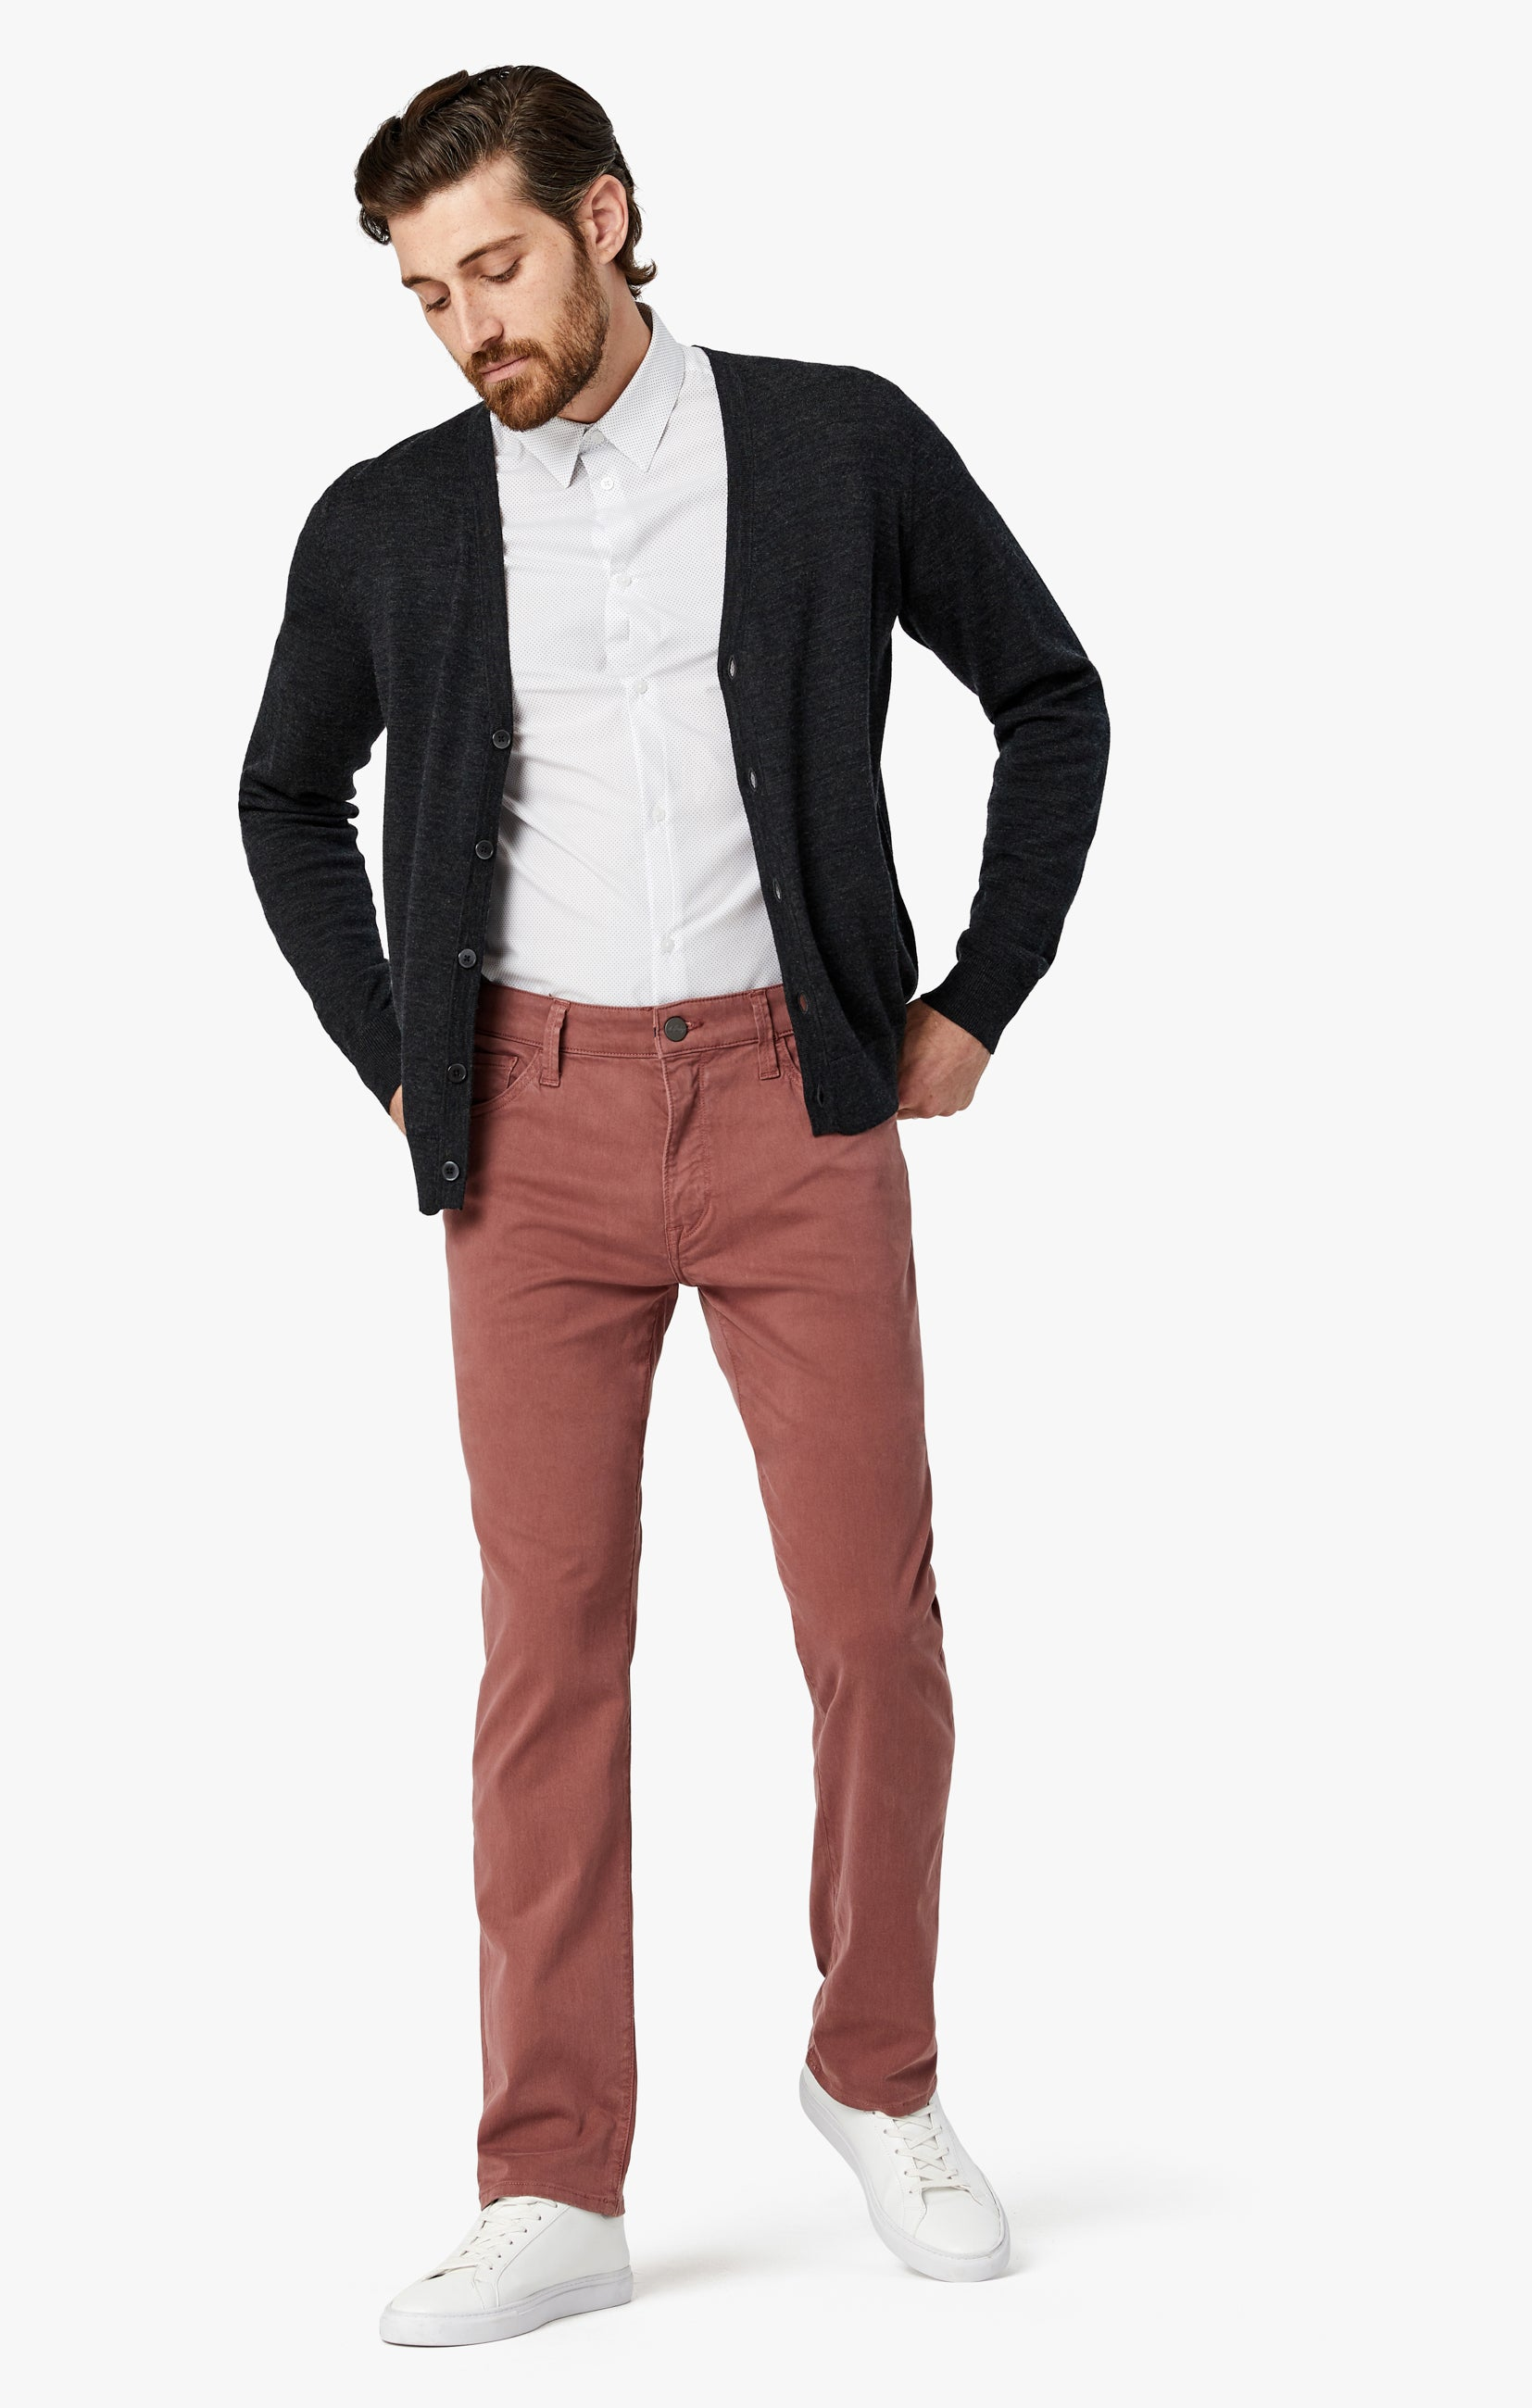 Courage Straight Leg Pants in Berry Twill Image 3